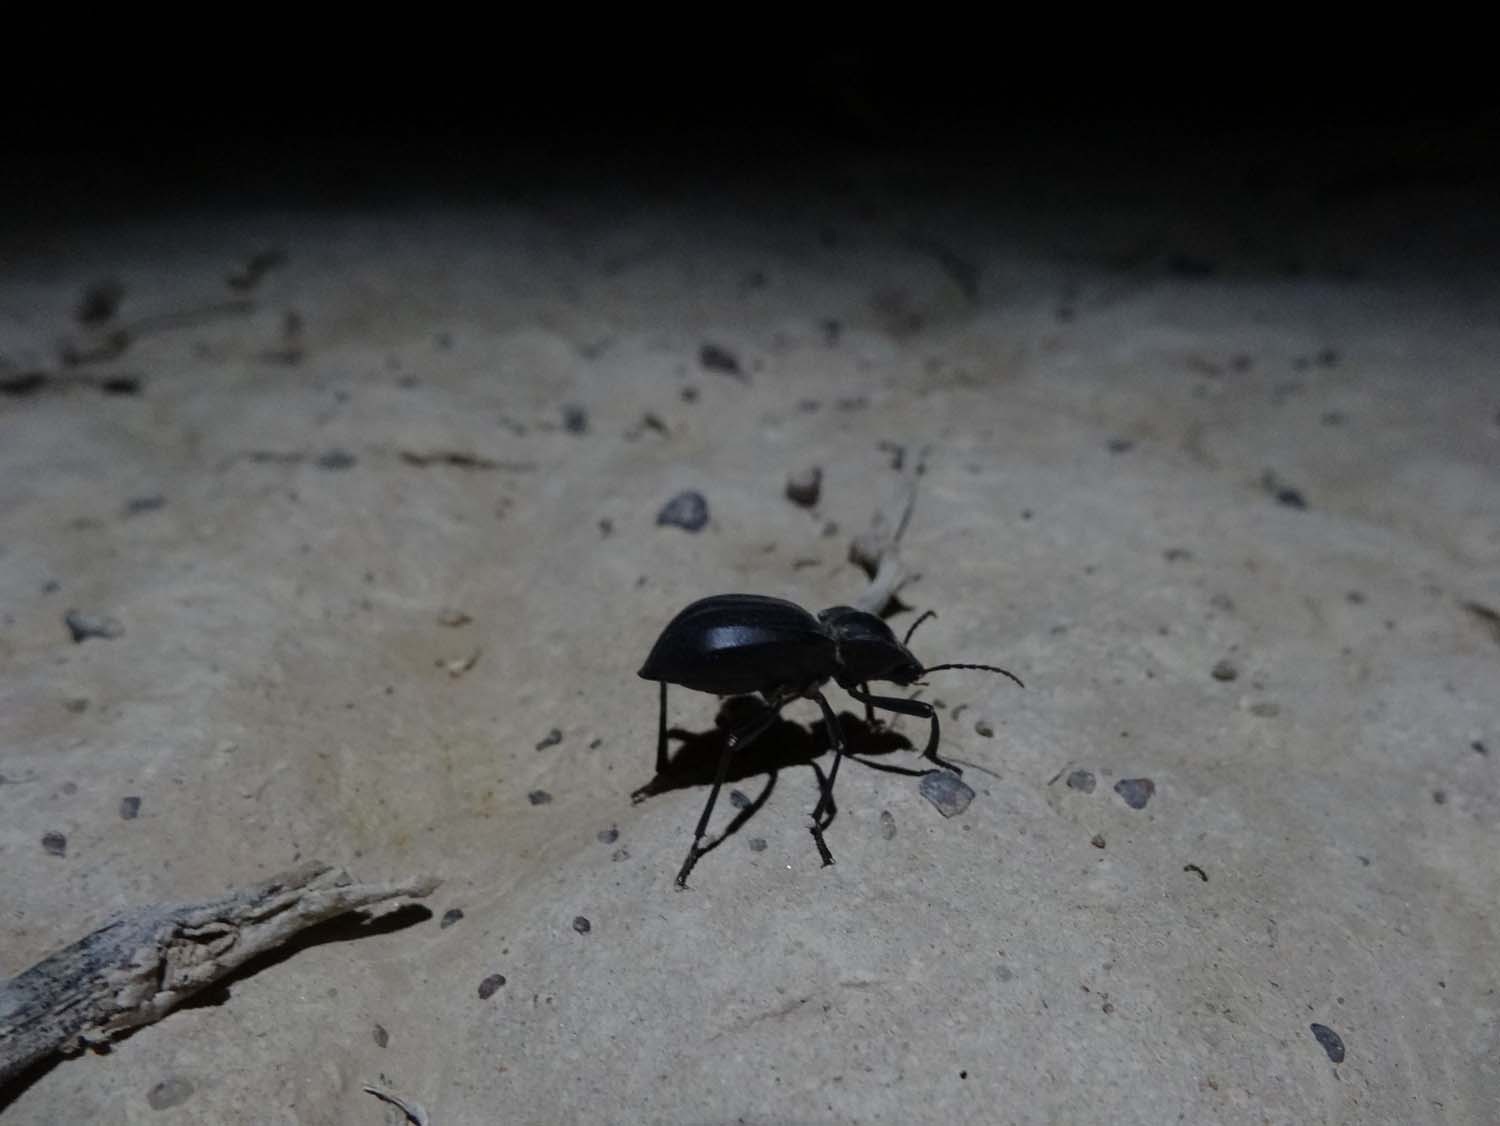 a big beetle was walking around our campsite one night in the desert